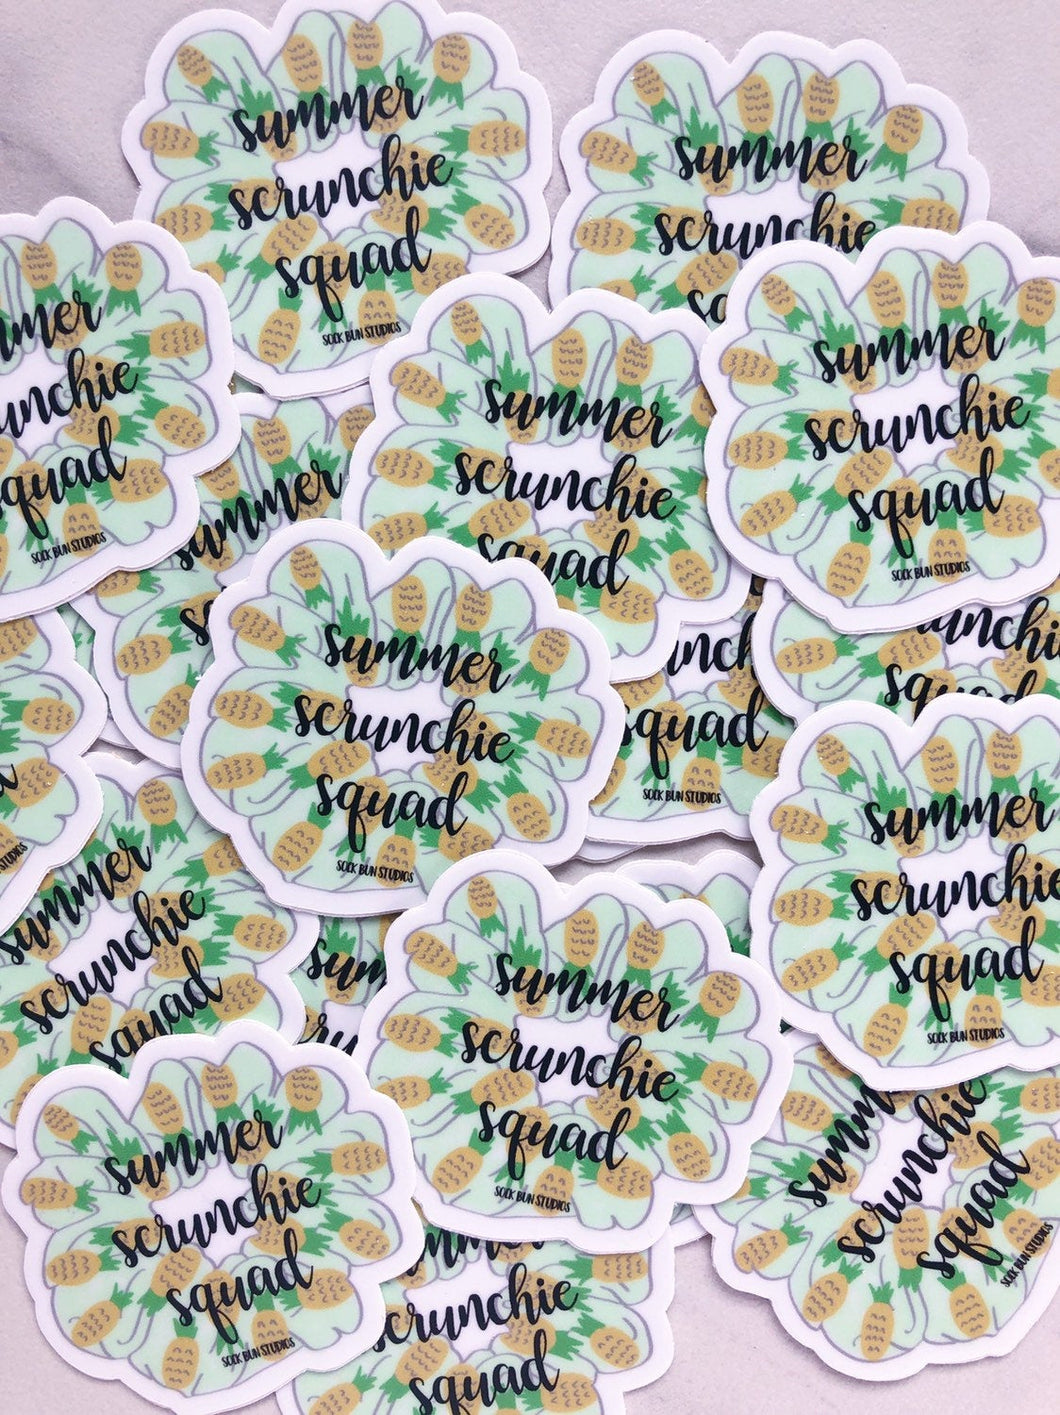 Sock Bun Studios Summer Scrunchie Squad Vinyl Sticker